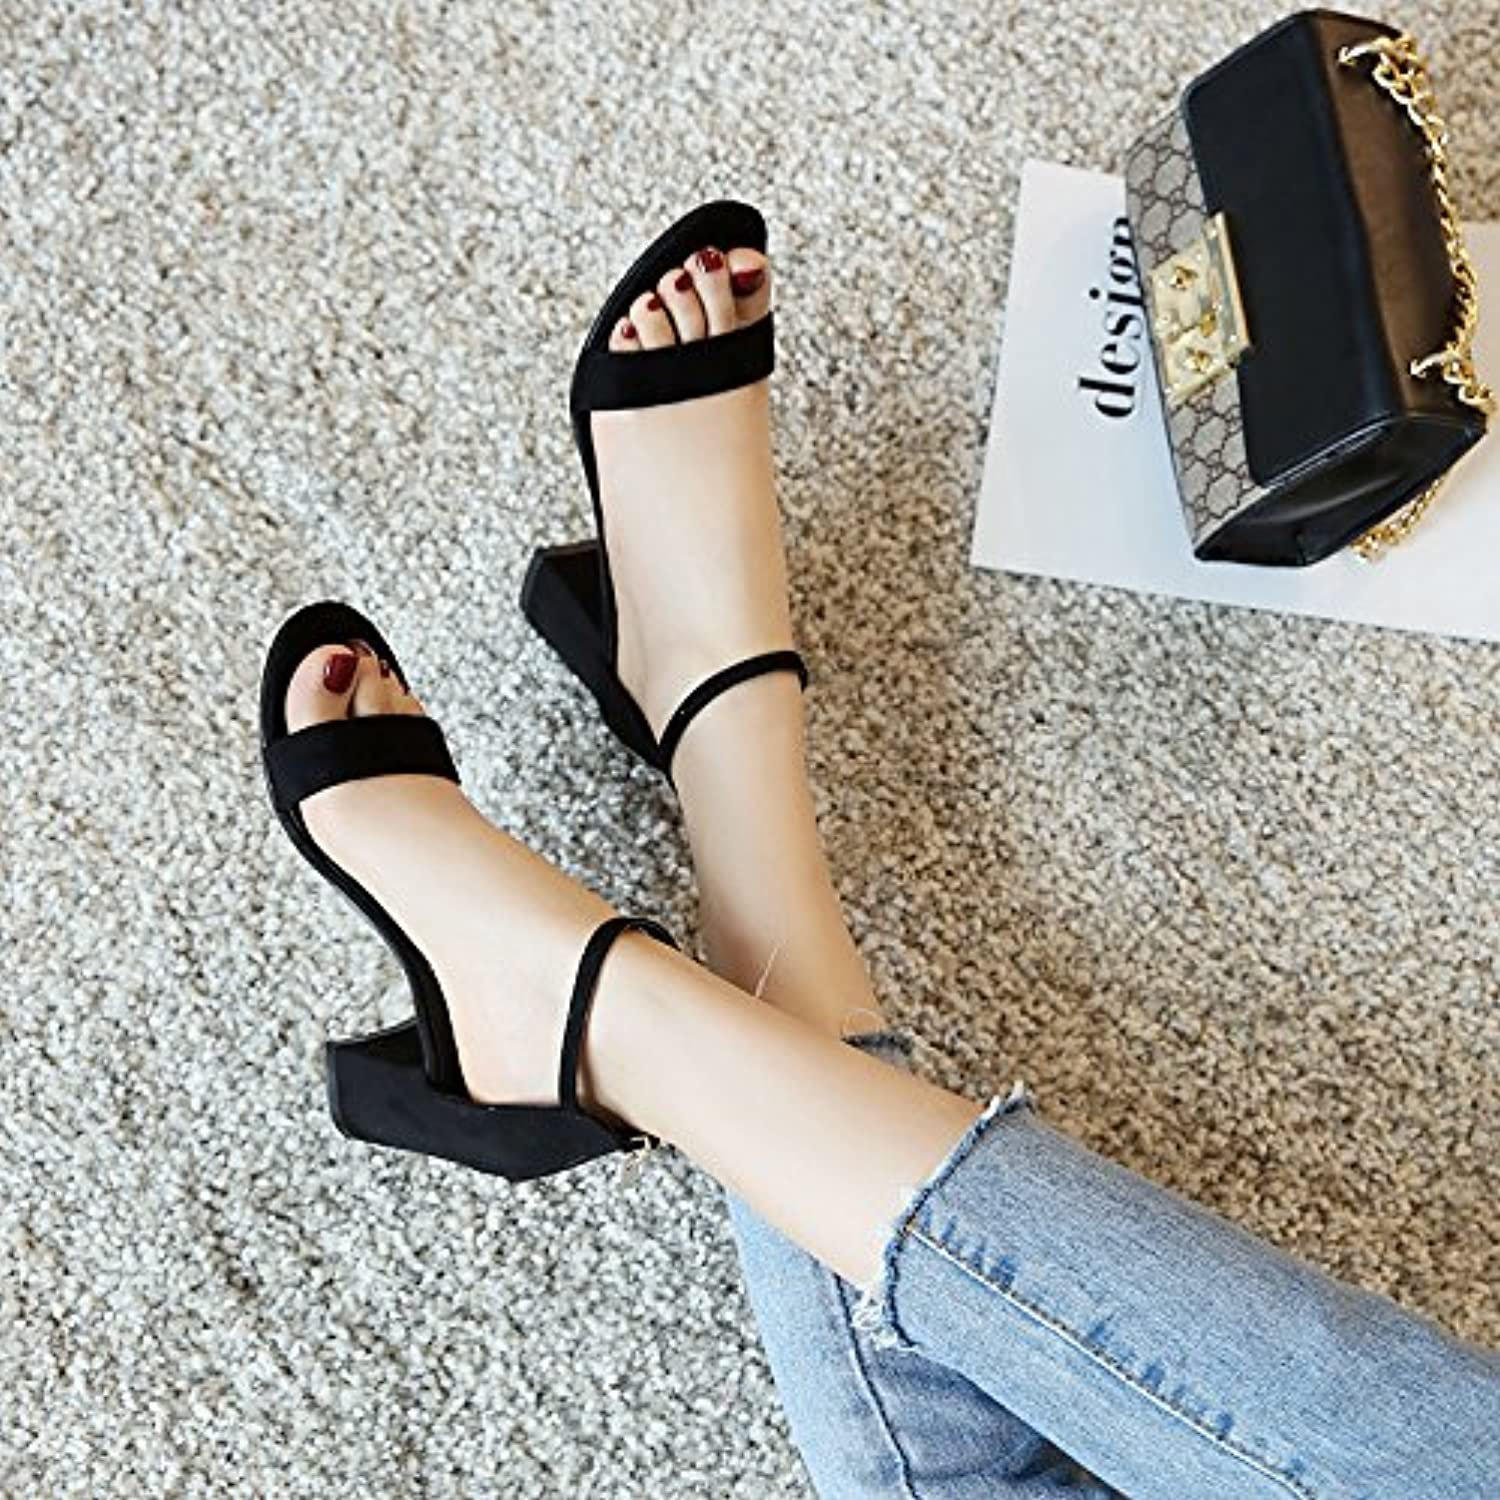 High heel show in The Summer Sandals Female Heels 2017 New Summer All-Match Word Buckle Thick MS. Rome Sandals shoes